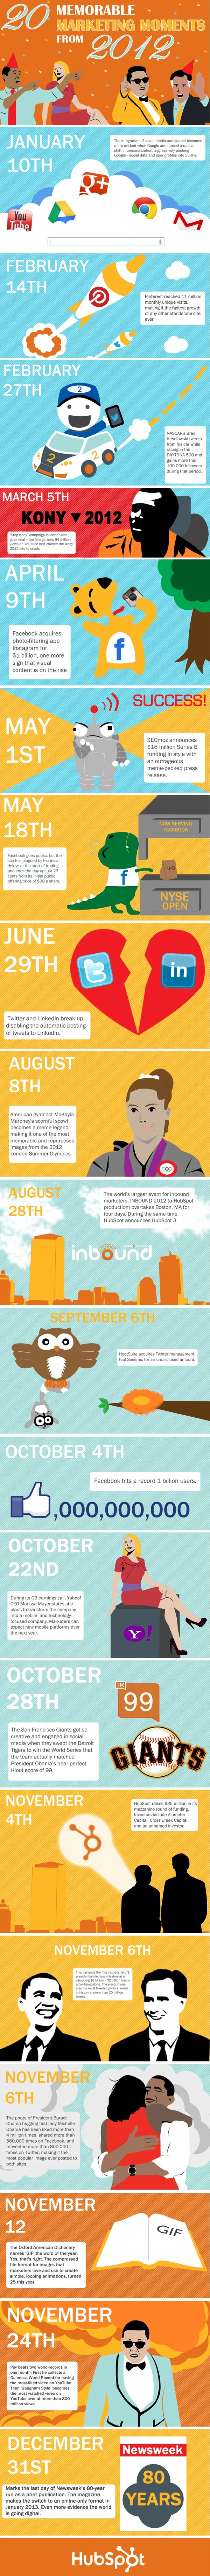 20 Memorable Marketing Moments in 2012 [Infographic]